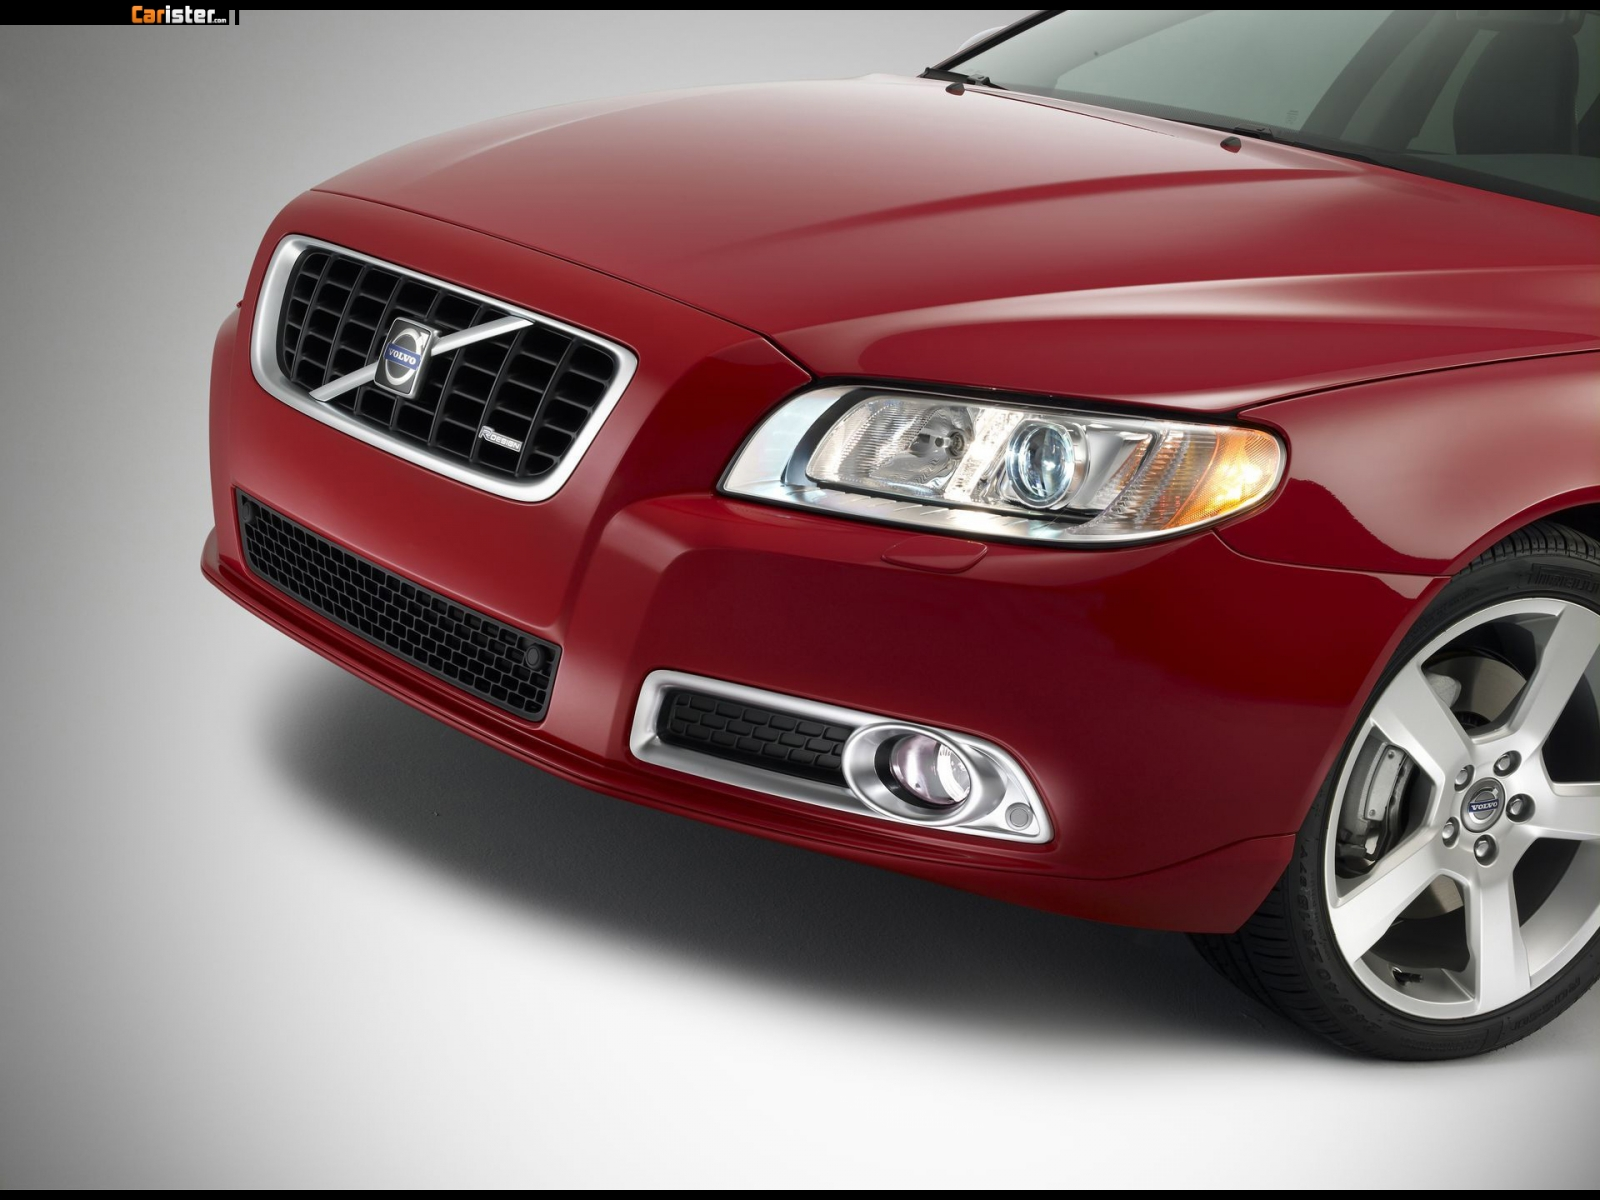 Volvo V70 R-Design 2008 - Photo 03 - Taille: 1600x1200